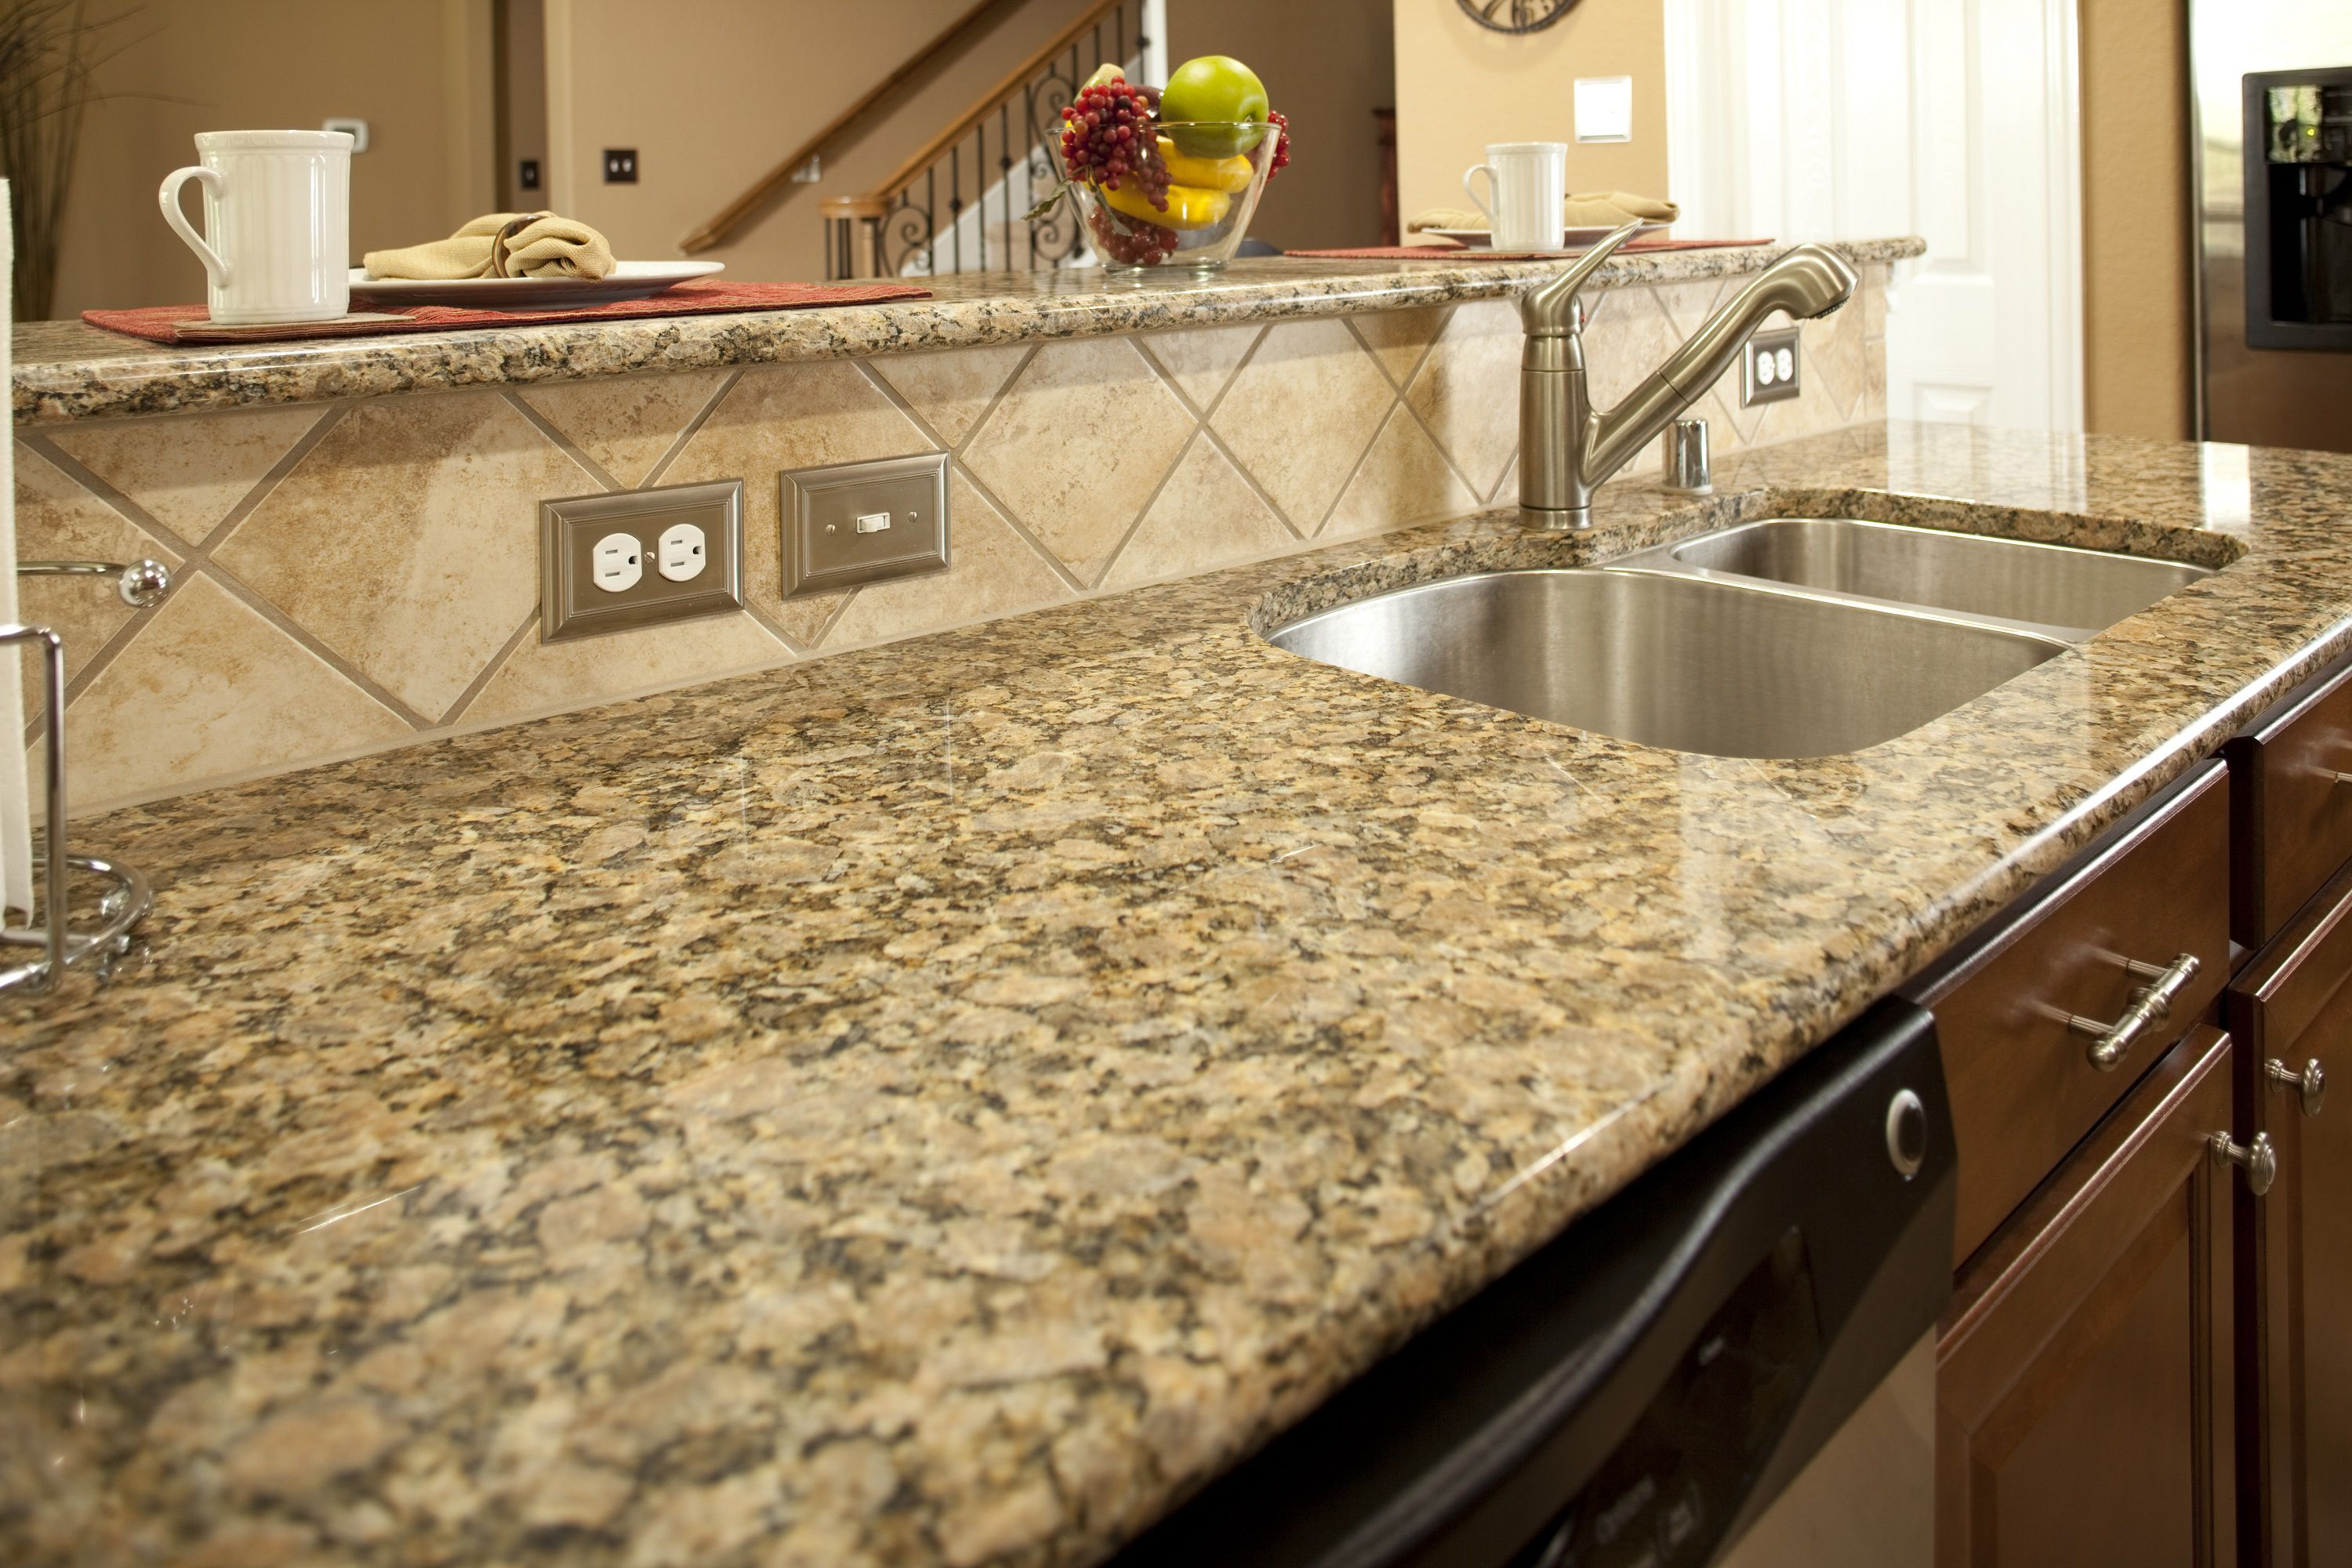 max kitchn to fit cleaning cleaner countertop lessons disinfect how w granite the and countertops clean from